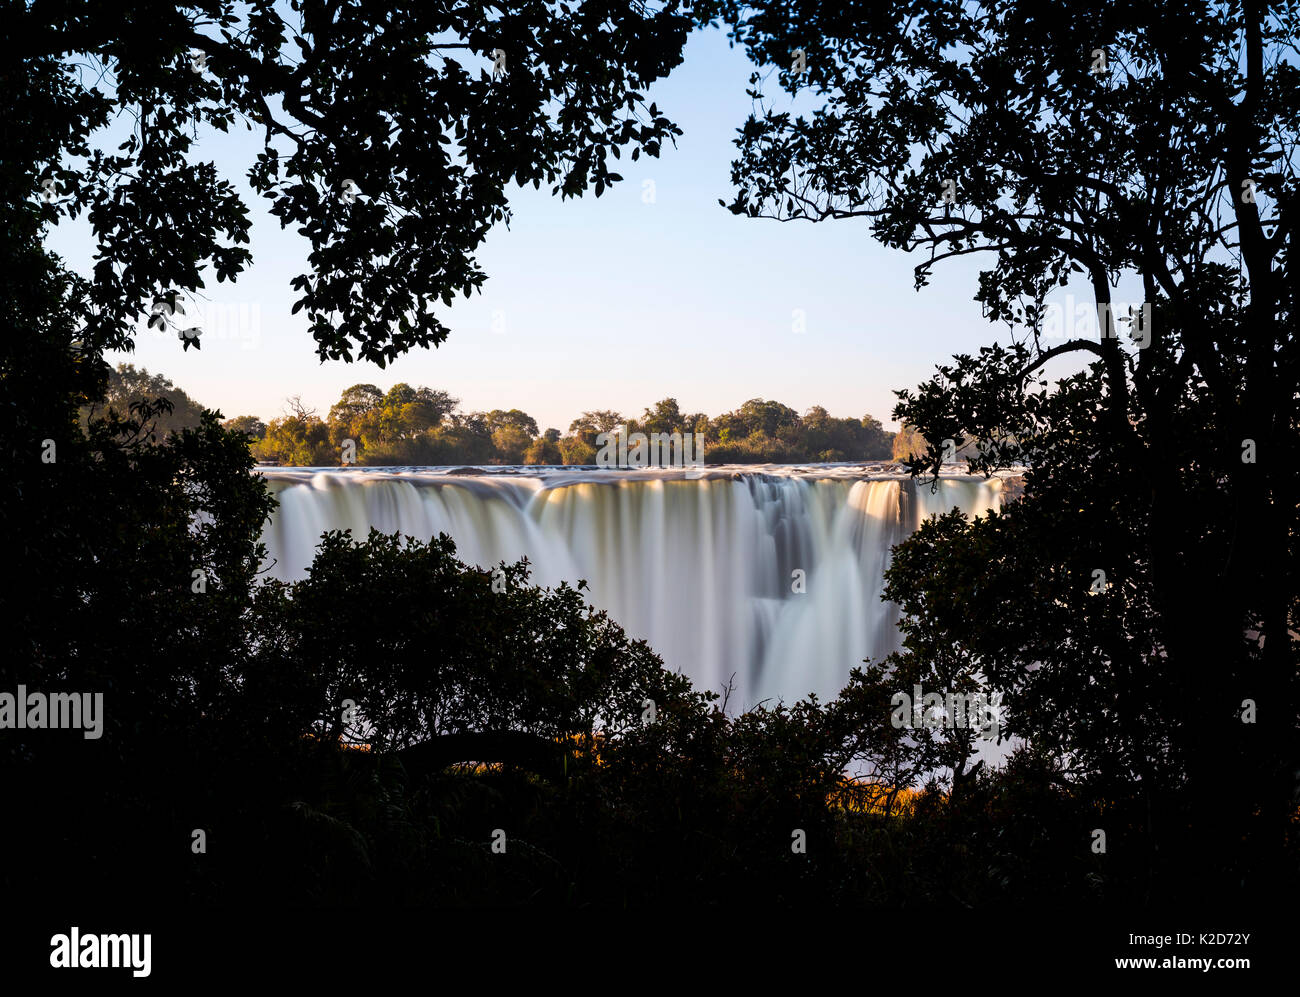 Victoria Falls seen through a silhouette of trees. Zimbabwe. June - Stock Image